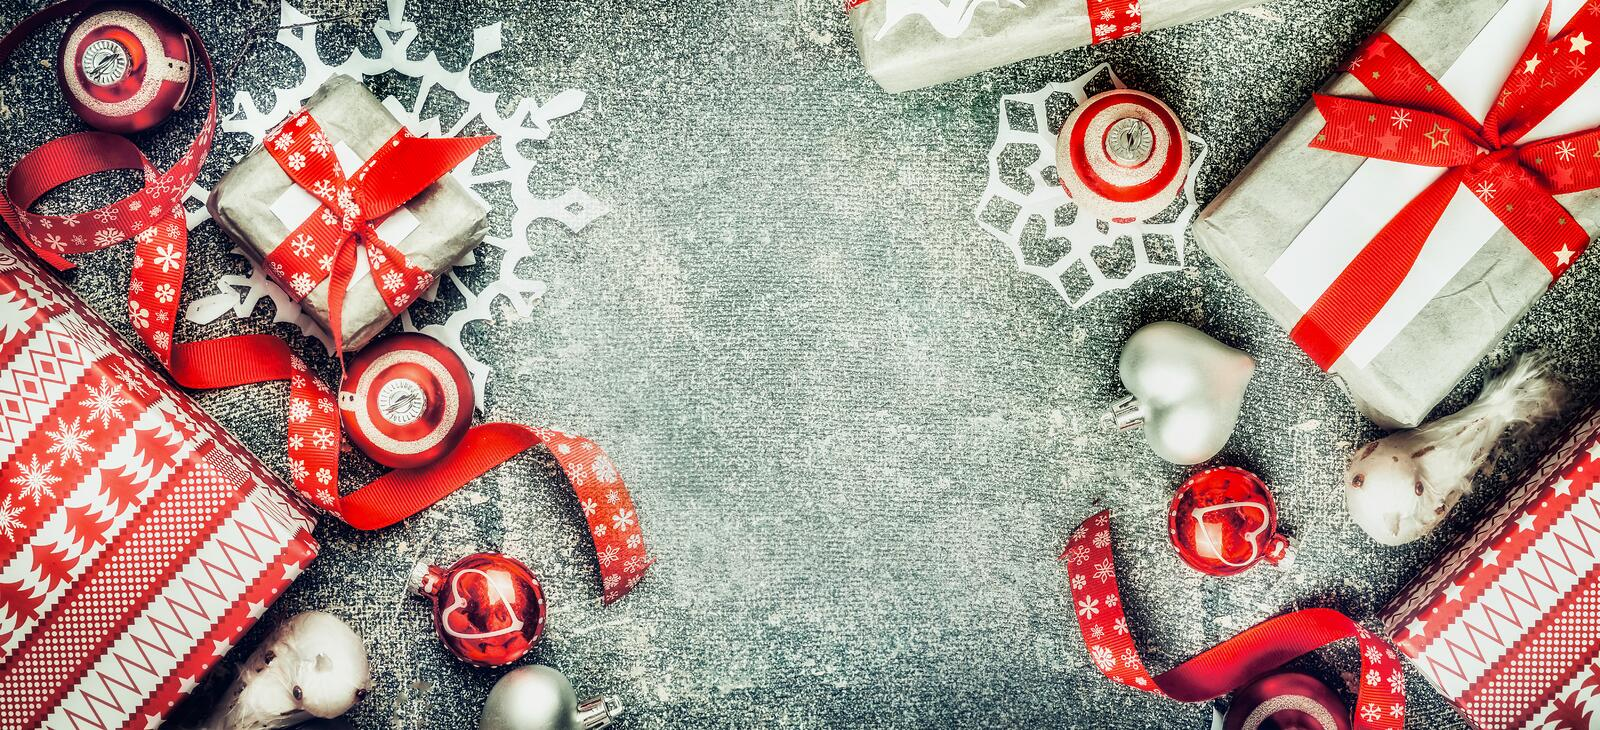 Christmas background with handmade paper snowflakes, gift boxes and red decorations on rustic background, top view. Banner stock photo